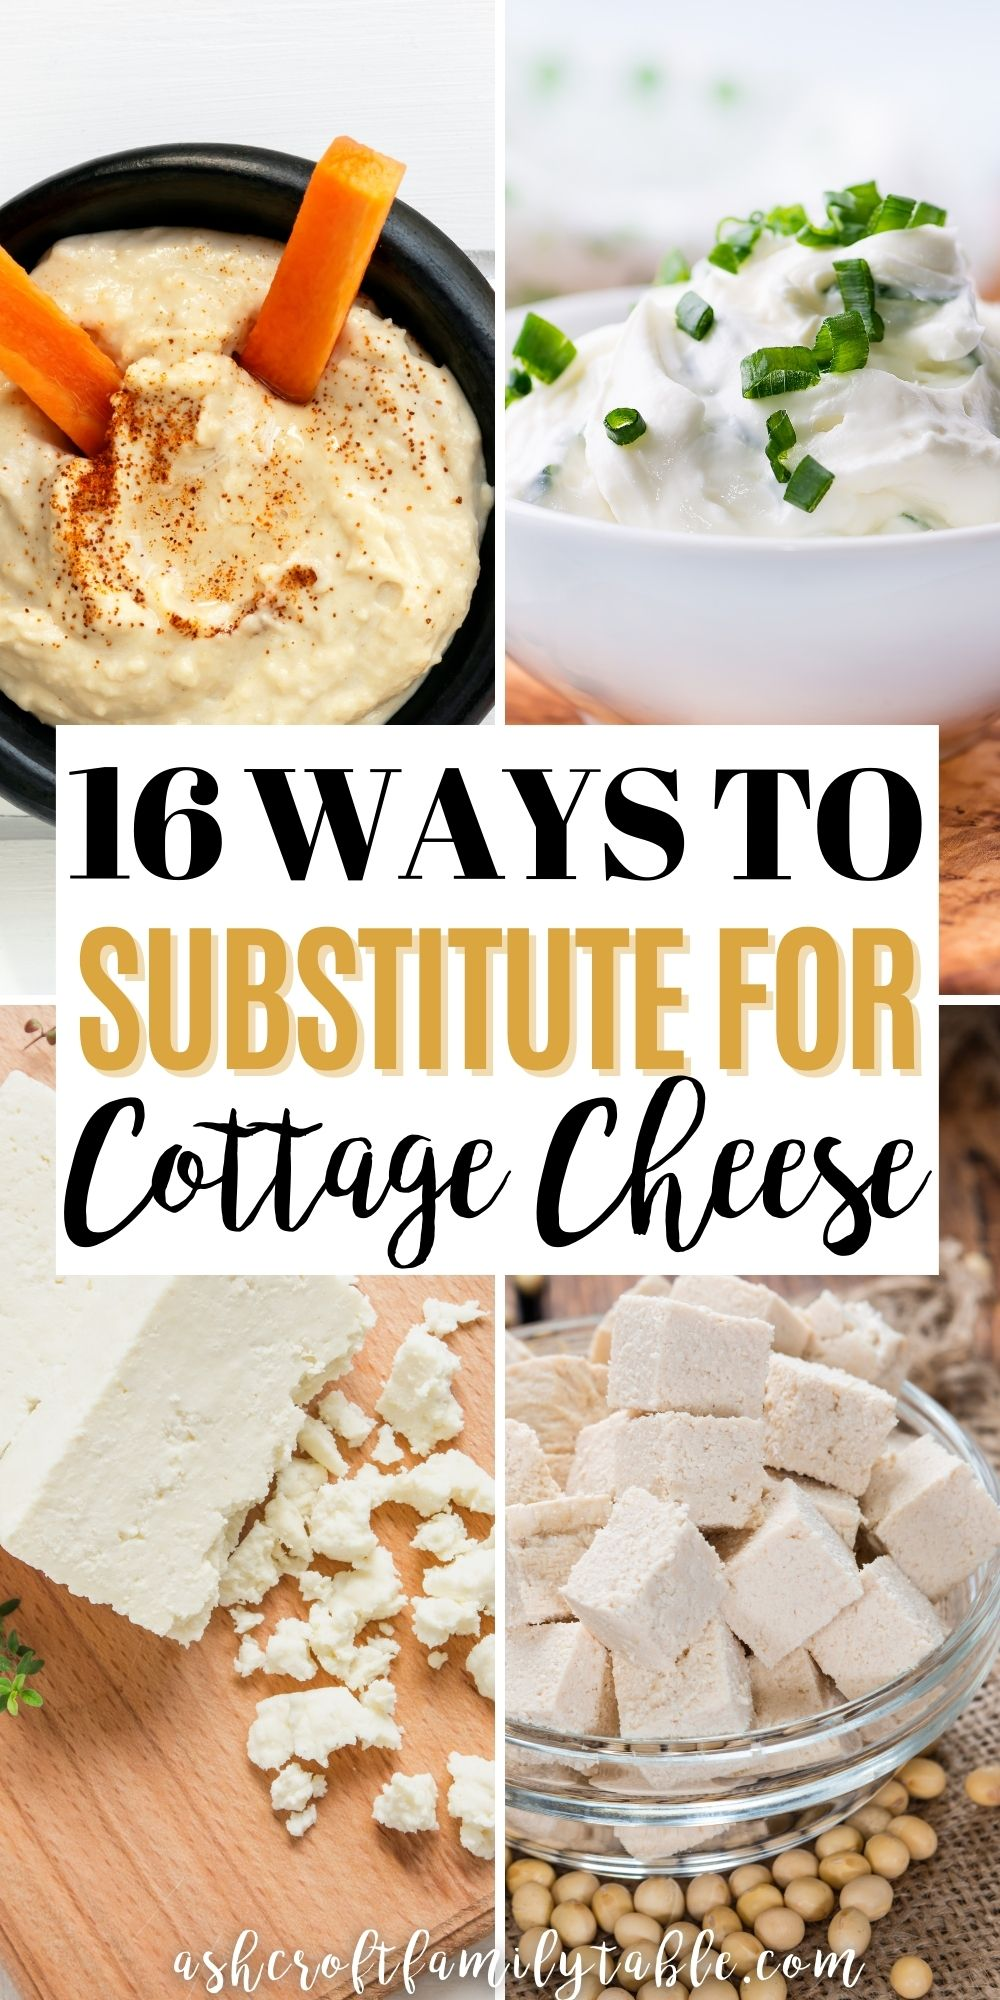 Pinterest graphic with text and collage of ingredients used to substitute for cottage cheese.